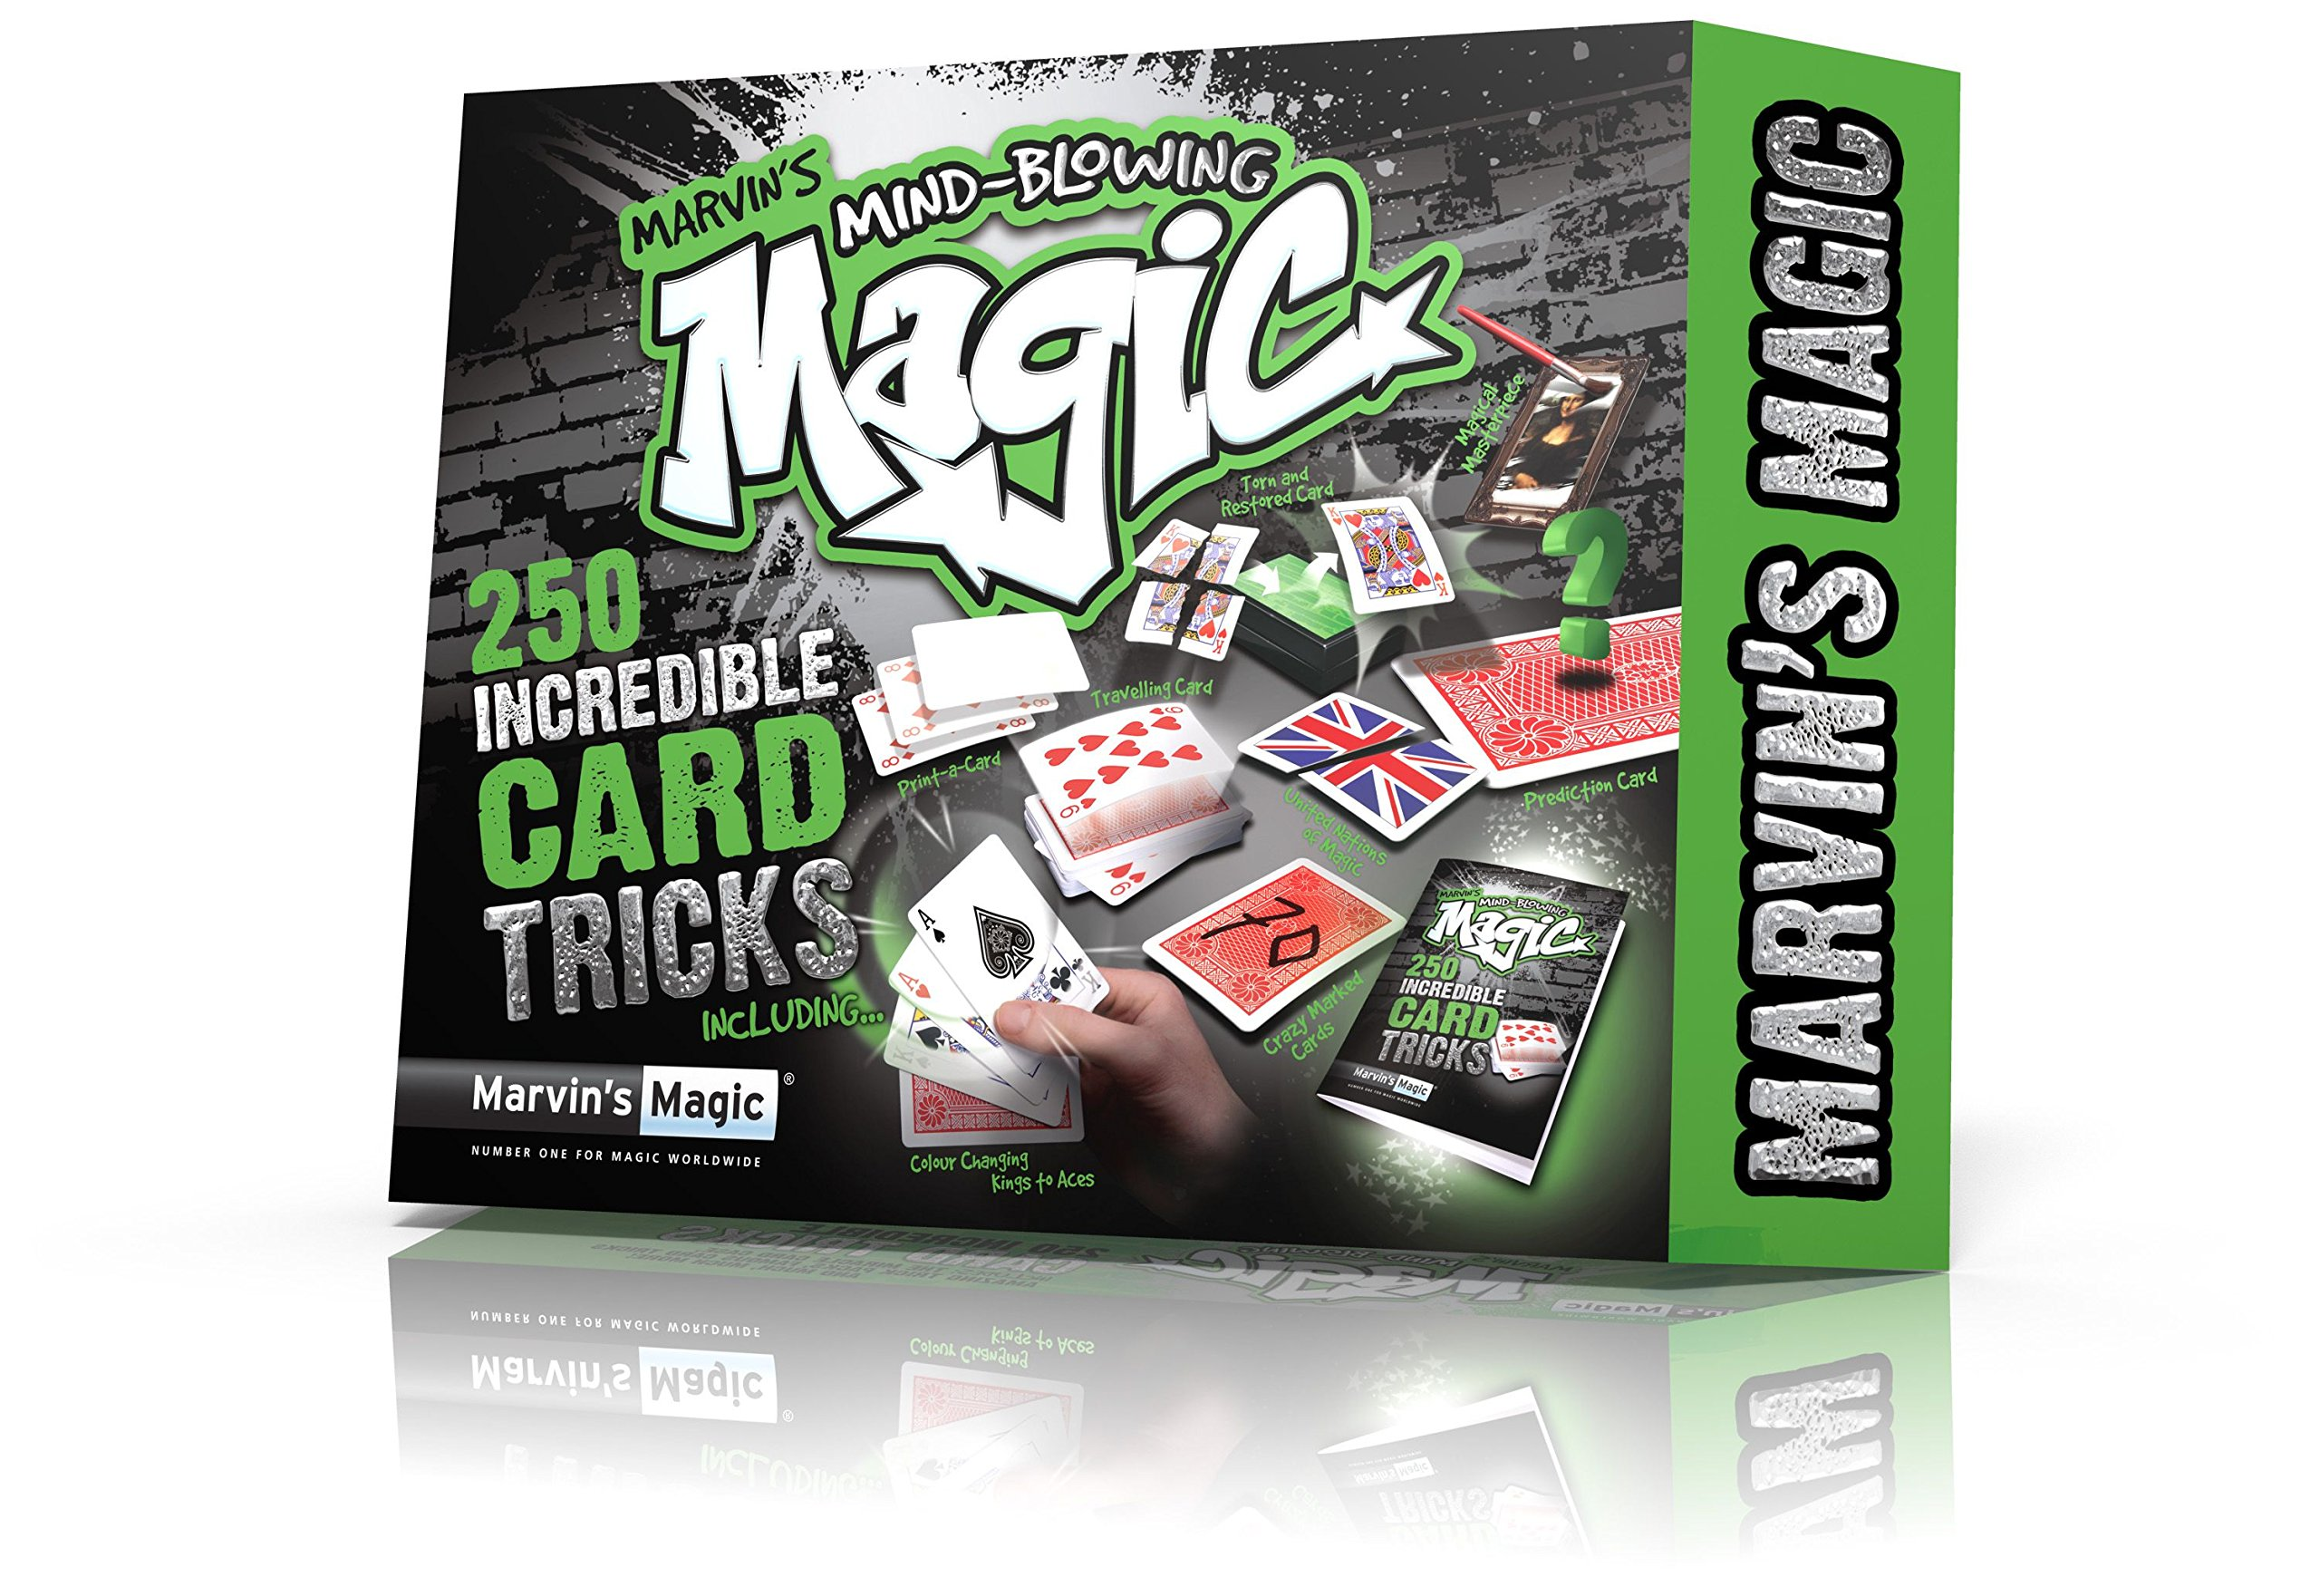 Marvin's Magic Mind Blowing Card Tricks by Marvin's Magic